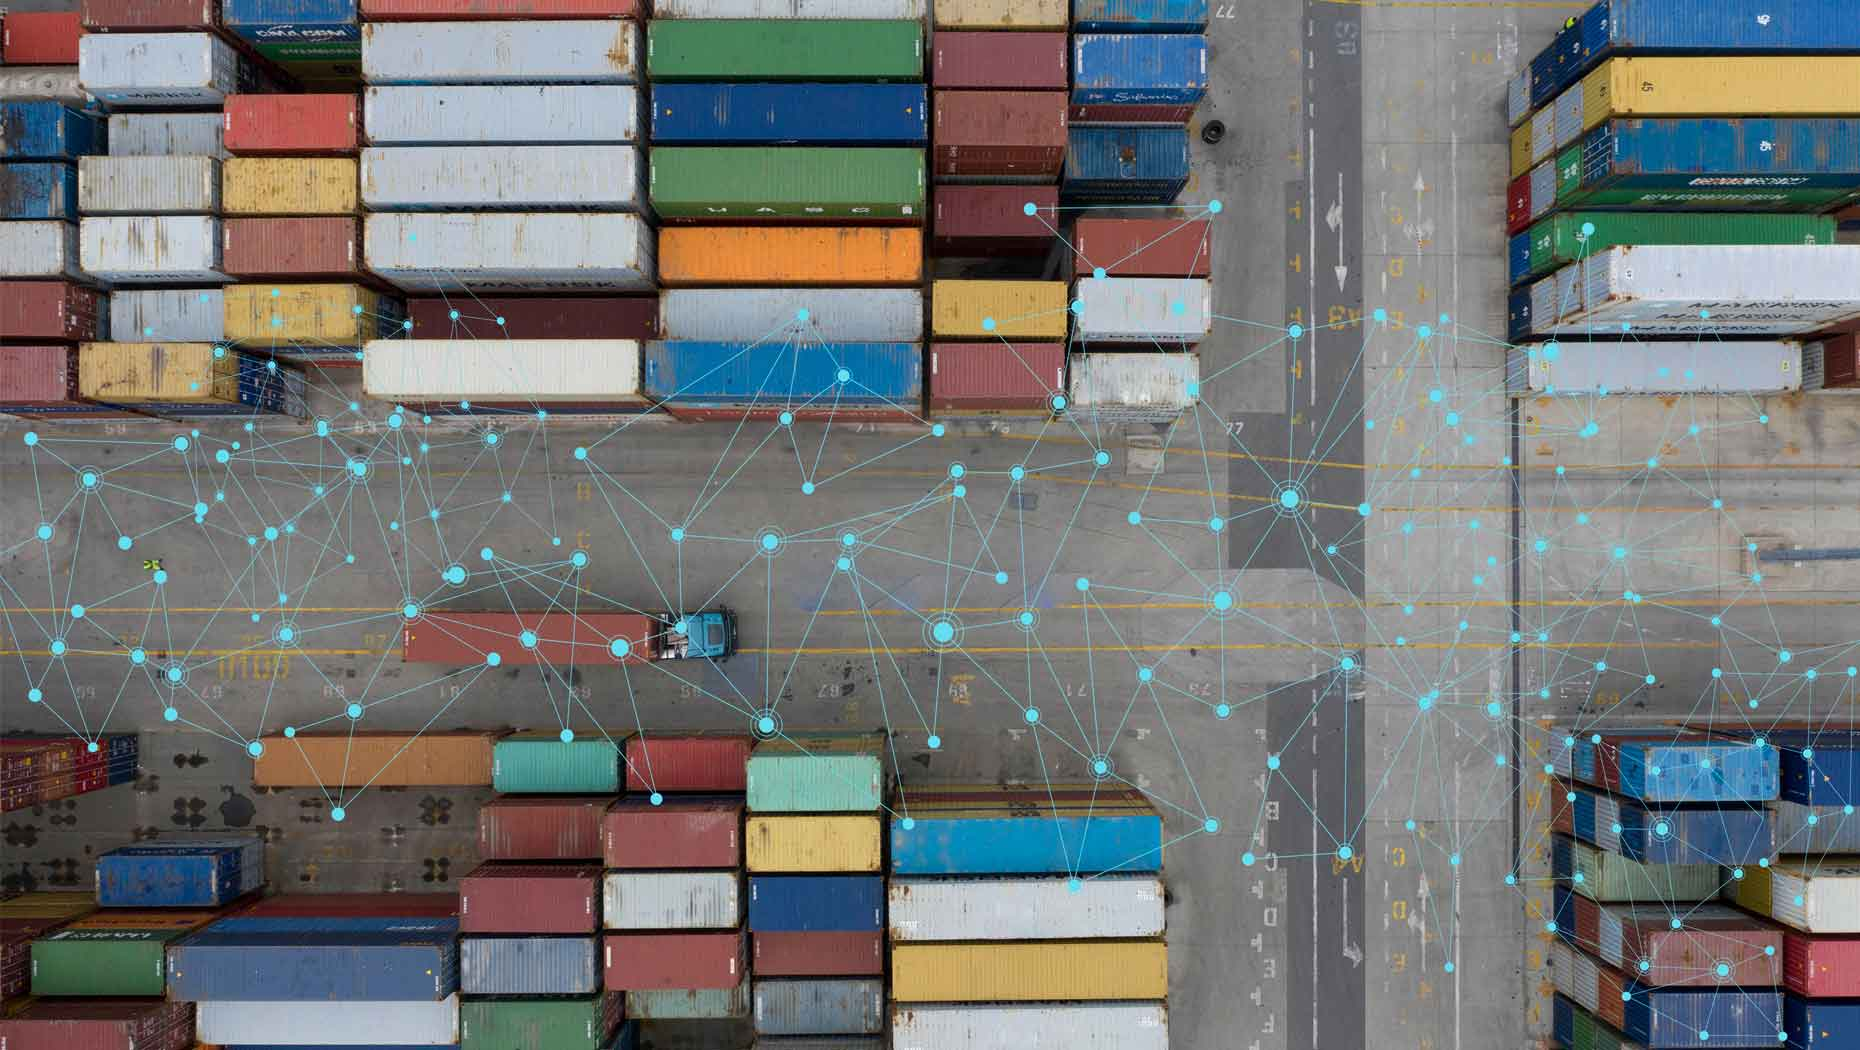 Aerial view of a Volvo truck driving between colourful cargo containers